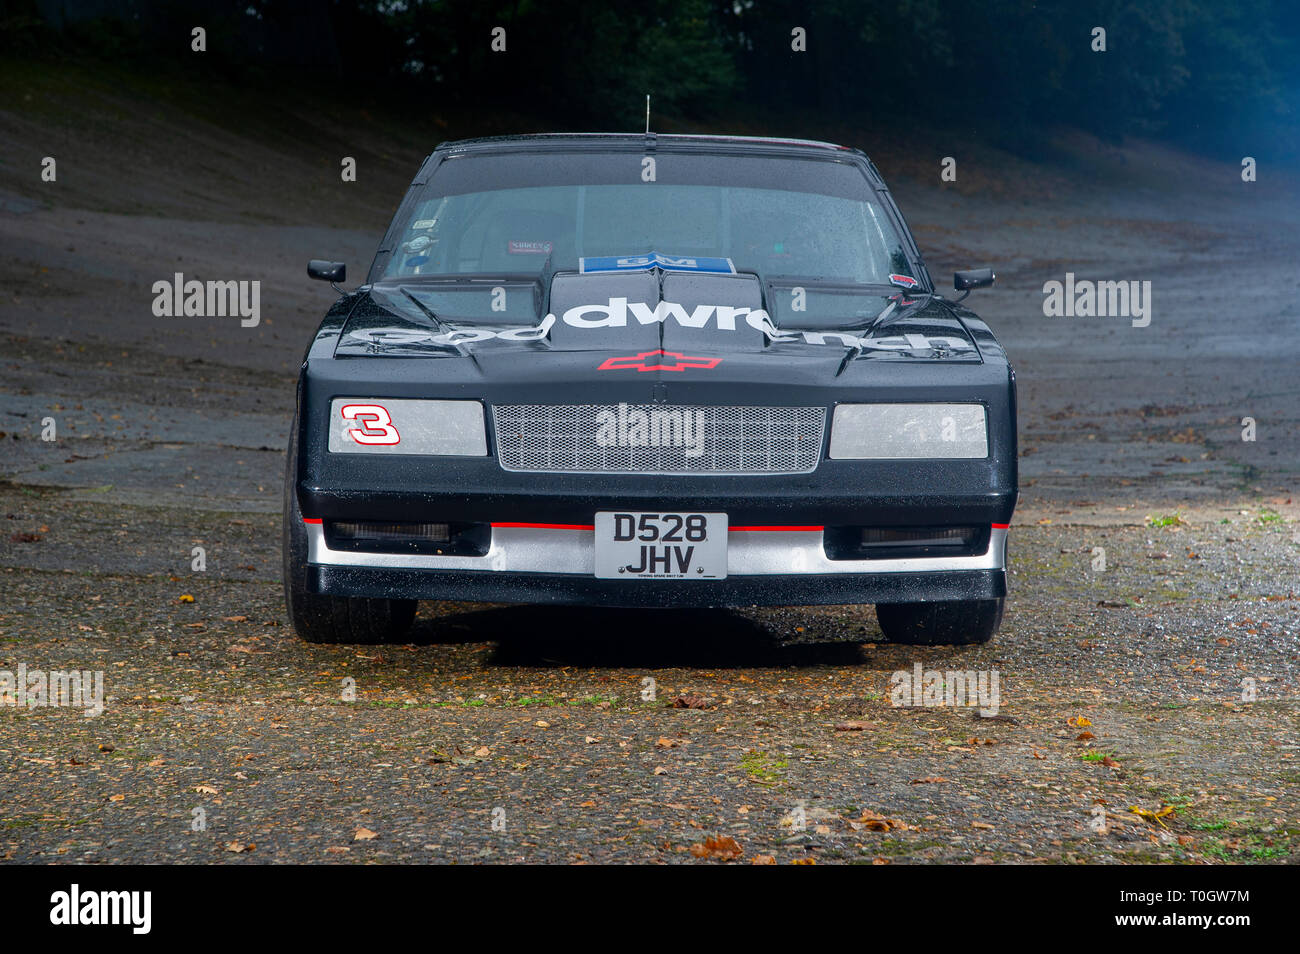 Chevy Monte Carlo Nascar Racing Car Driven By Dale Earnhardt Stock Photo Alamy